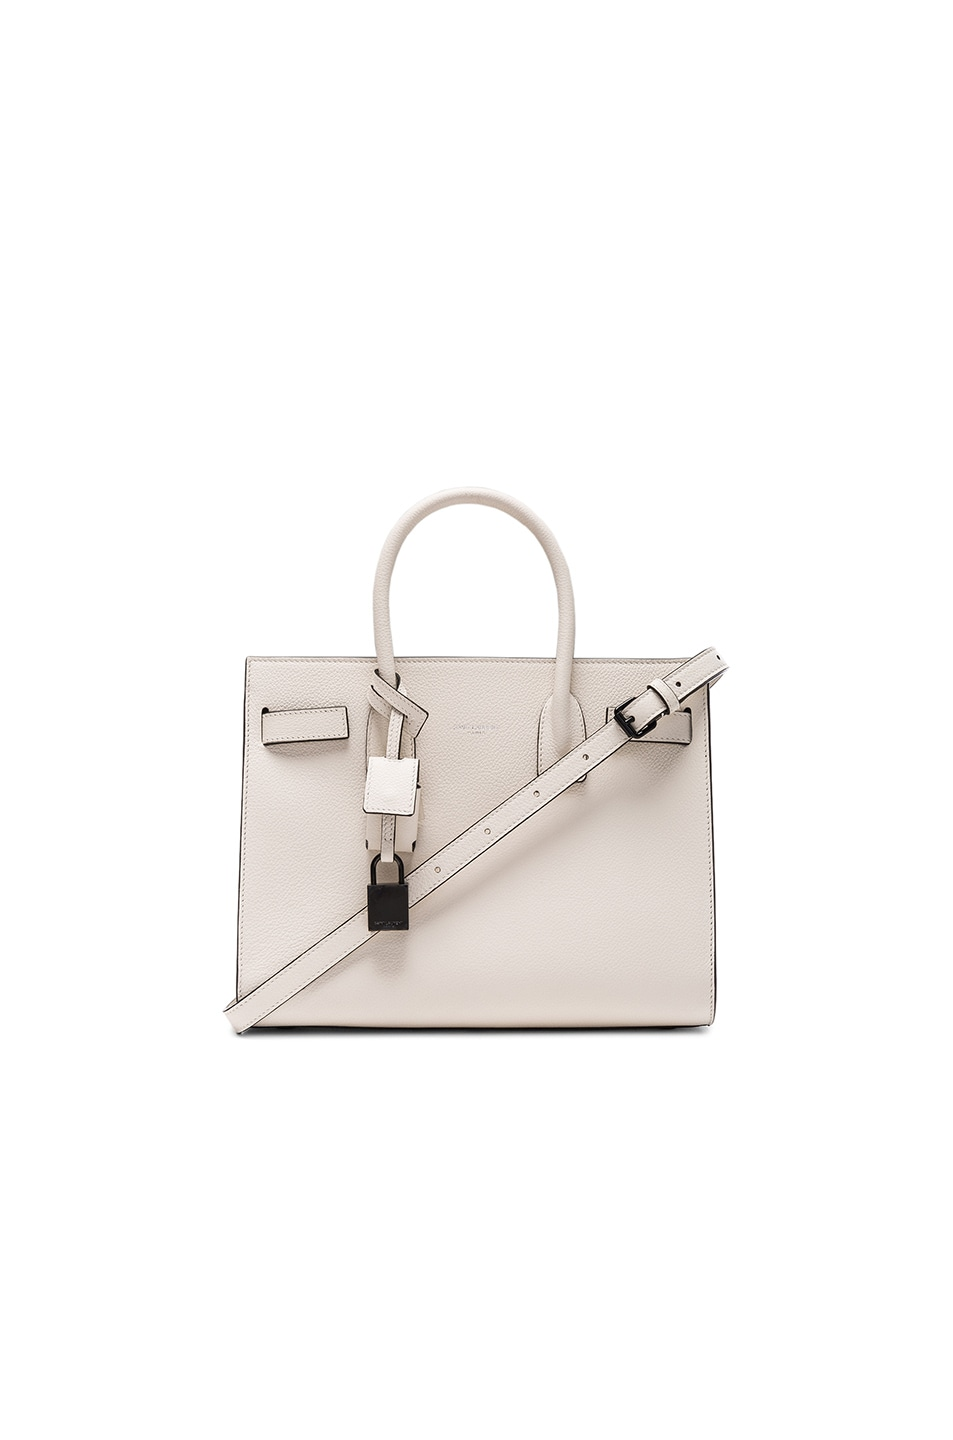 Image 1 of Saint Laurent Baby Sac de Jour in Porcelain & Black